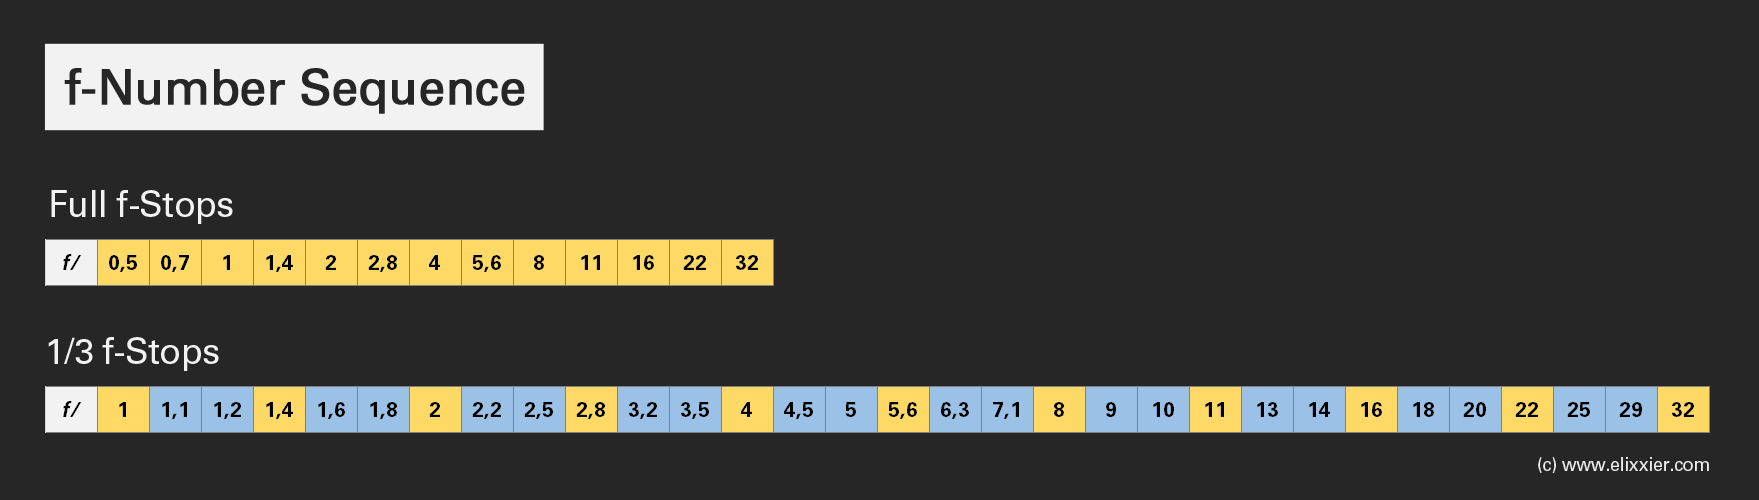 f-Number-Sequence